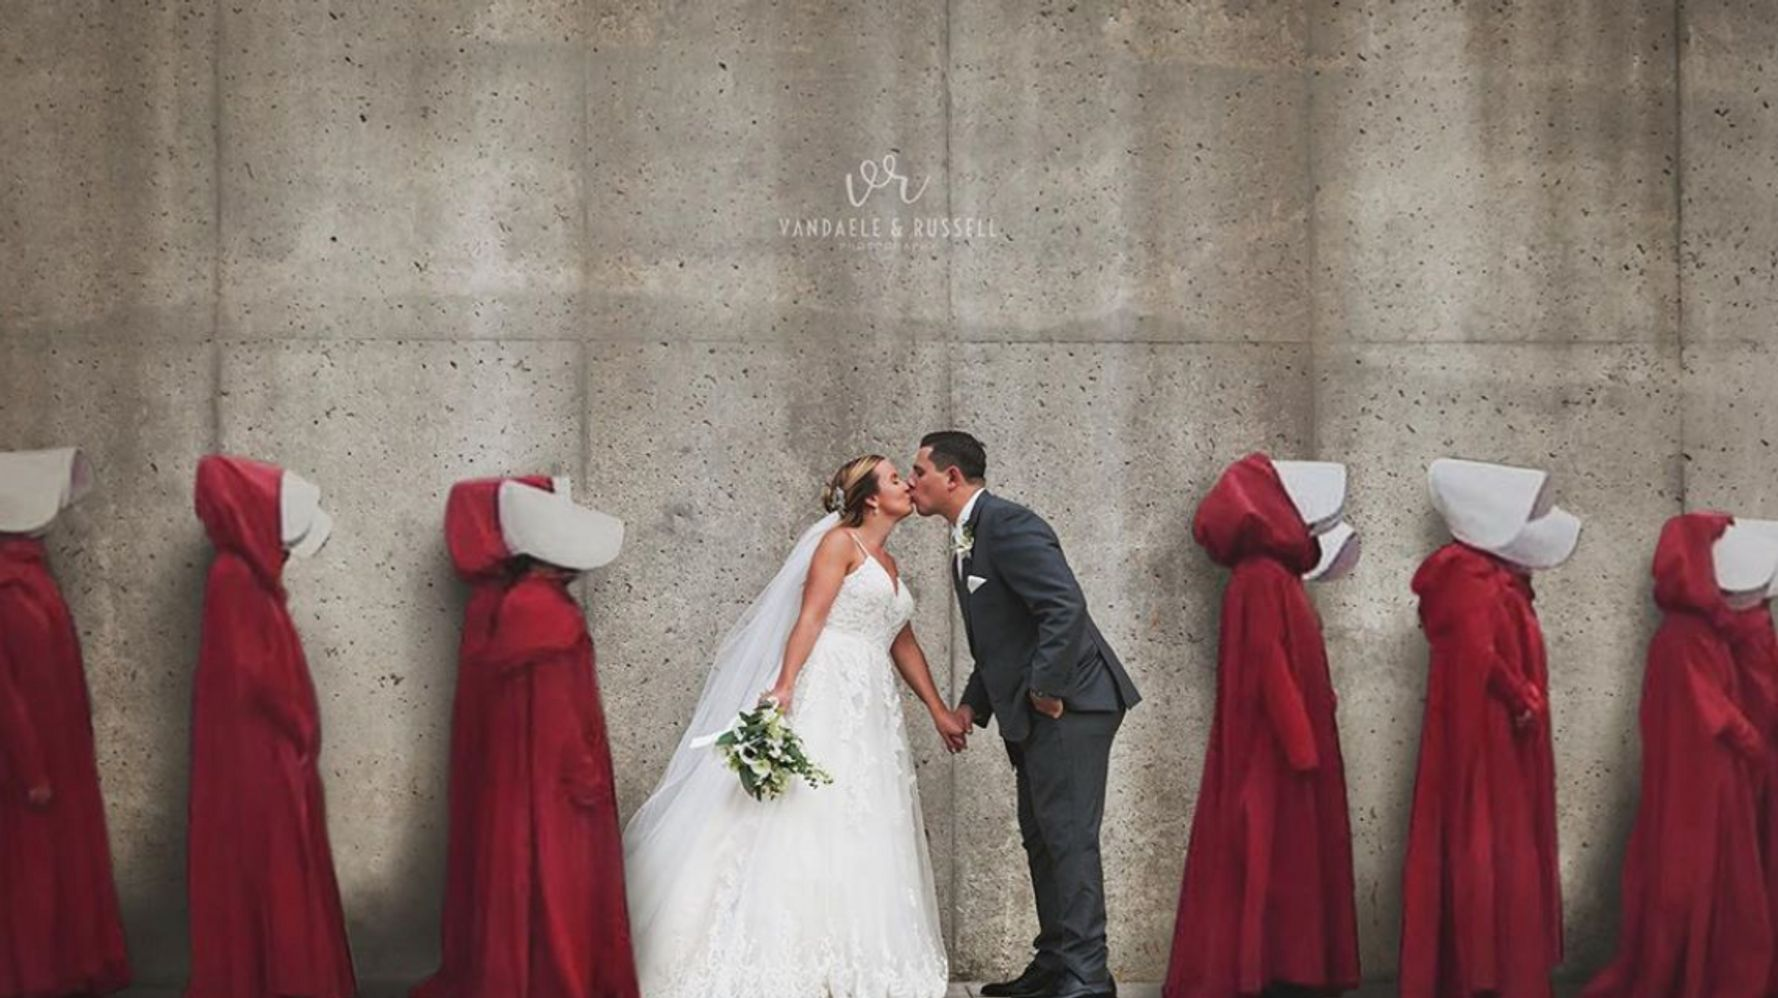 Westlake Legal Group 5d962f0d2100000d04f9fe33 Photographer Behind Shocking 'Handmaid's Tale' Wedding Pic Says It's Not What You Think